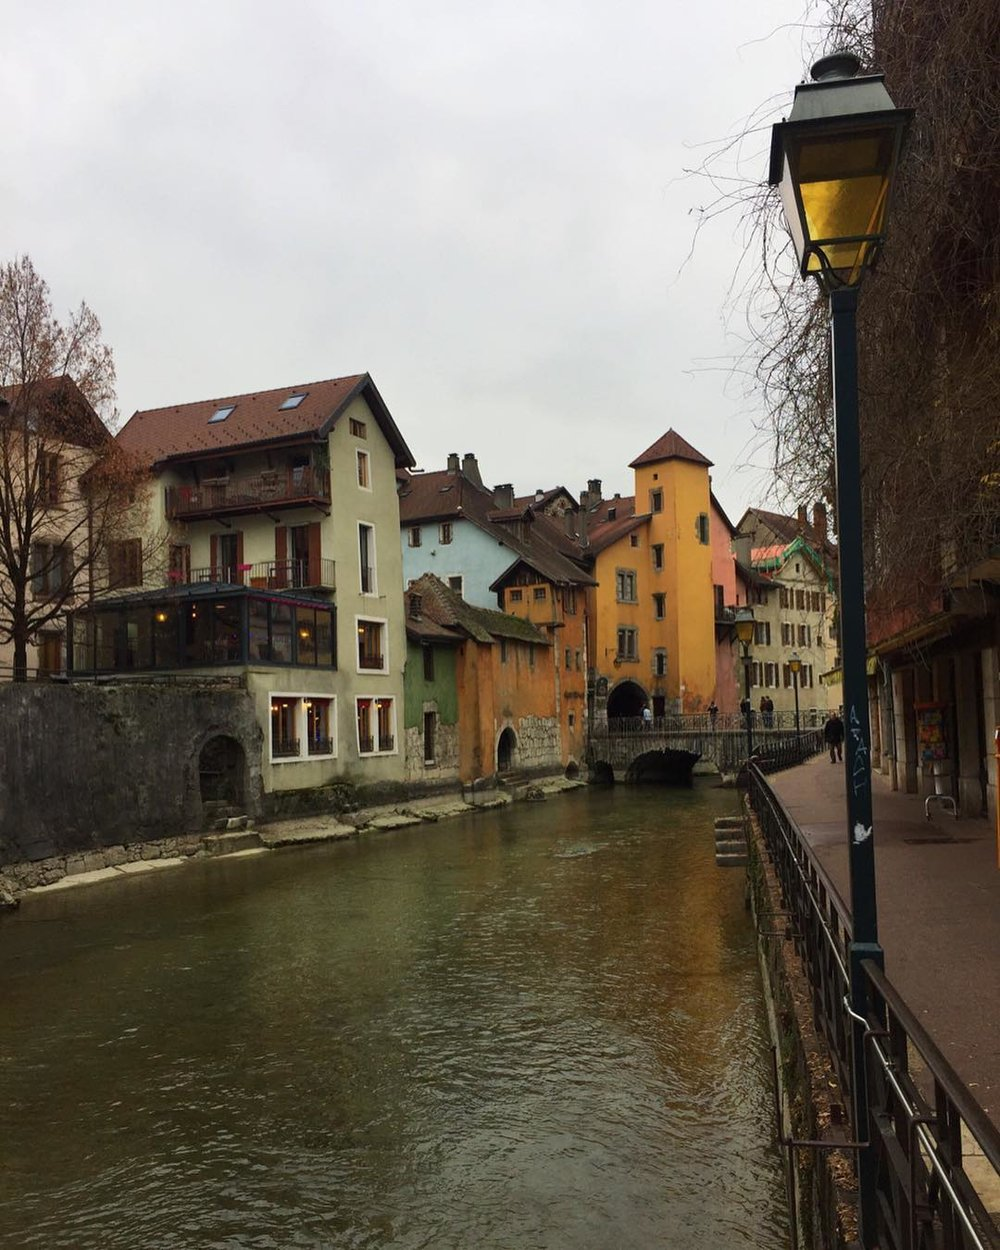 Exploring the canals of Annecy, in the Northern Alps of France.